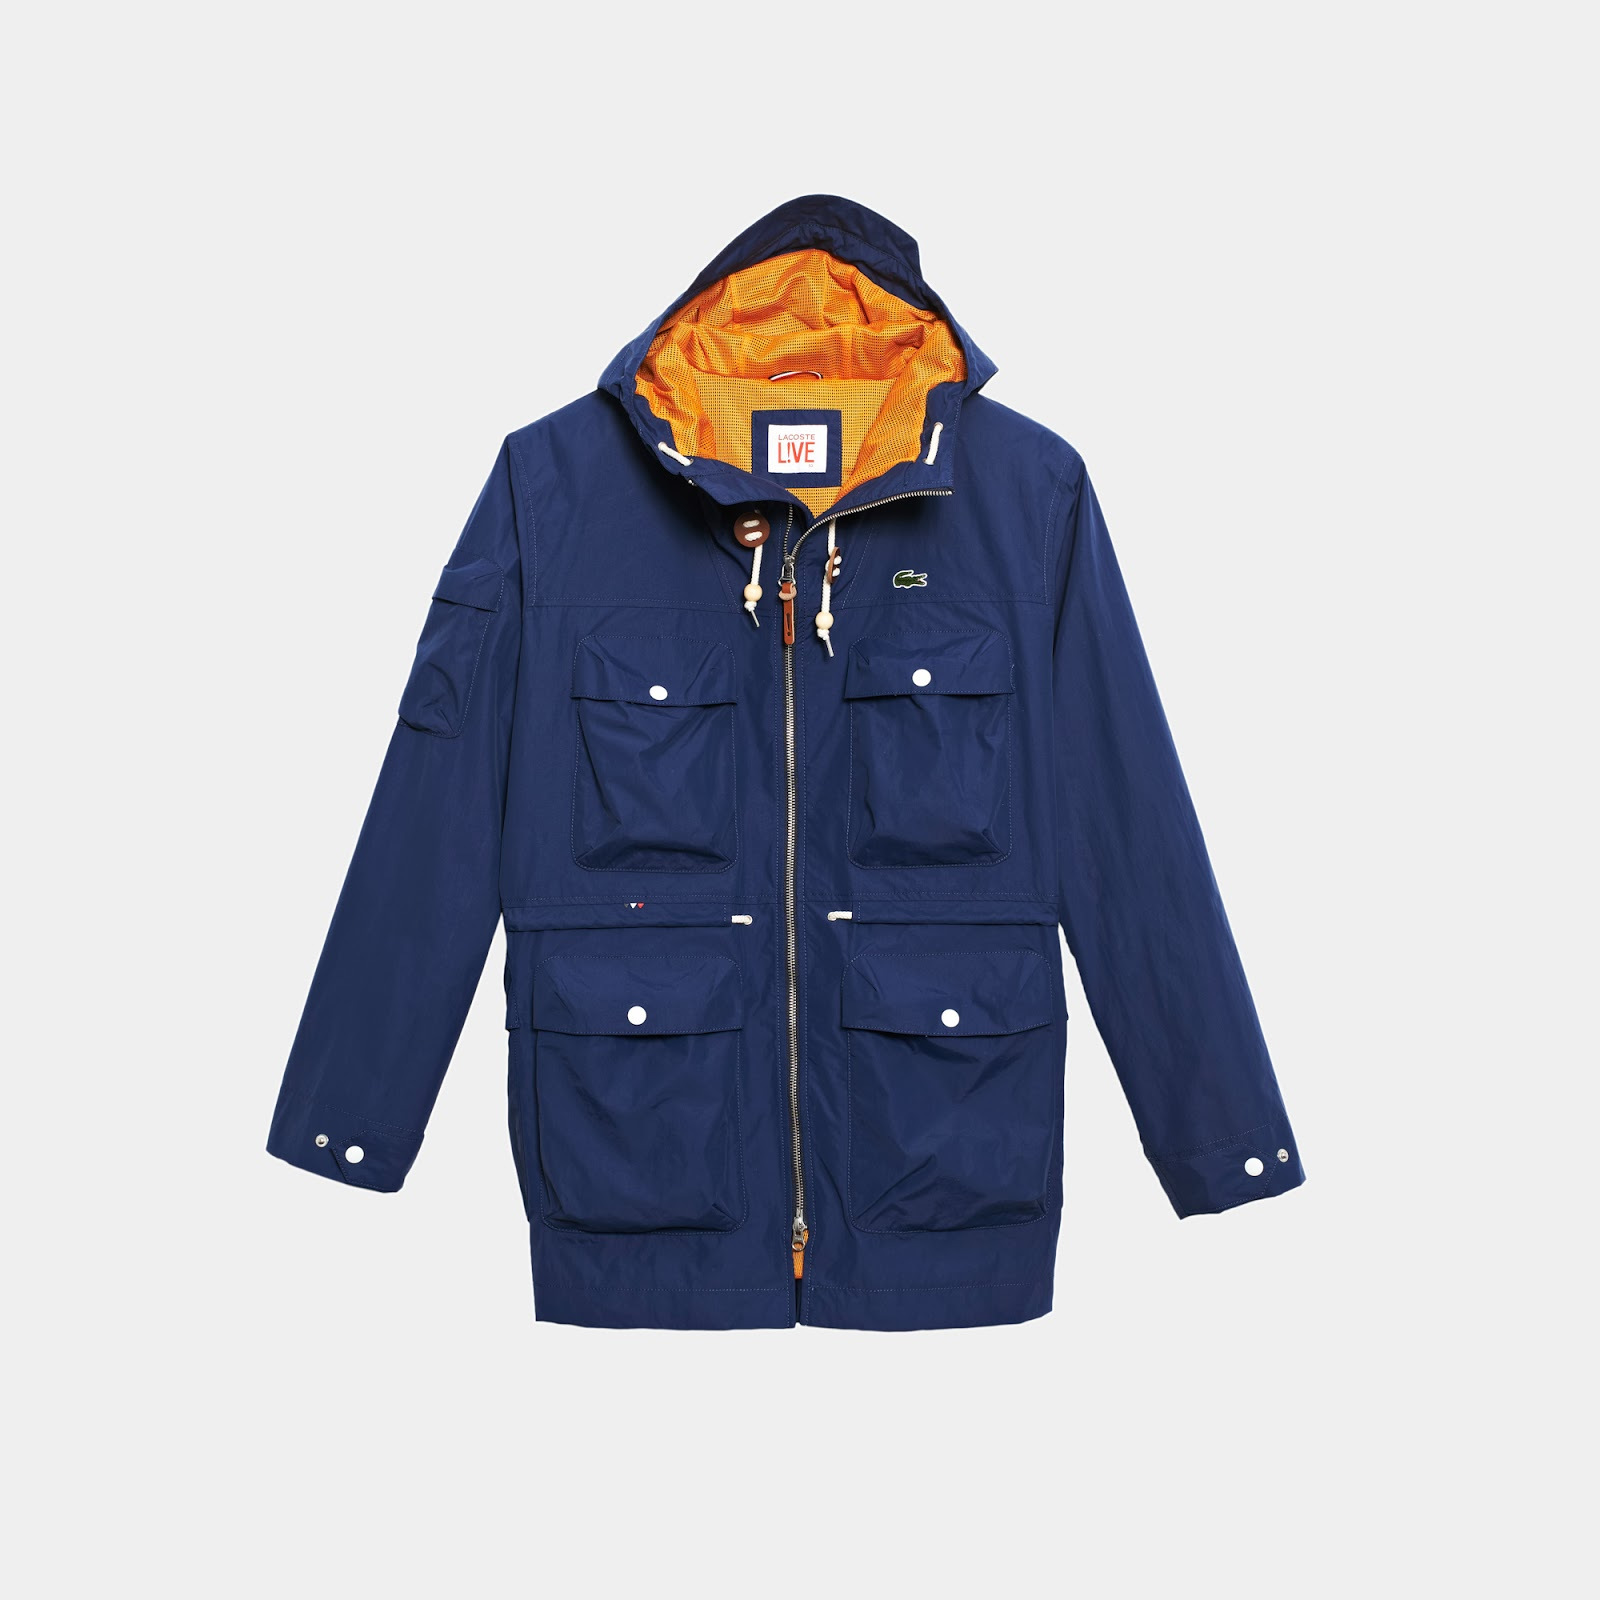 f515b1b1f6 Fat Buddha Store Blog // All the News: Lacoste Live - Hooded ...